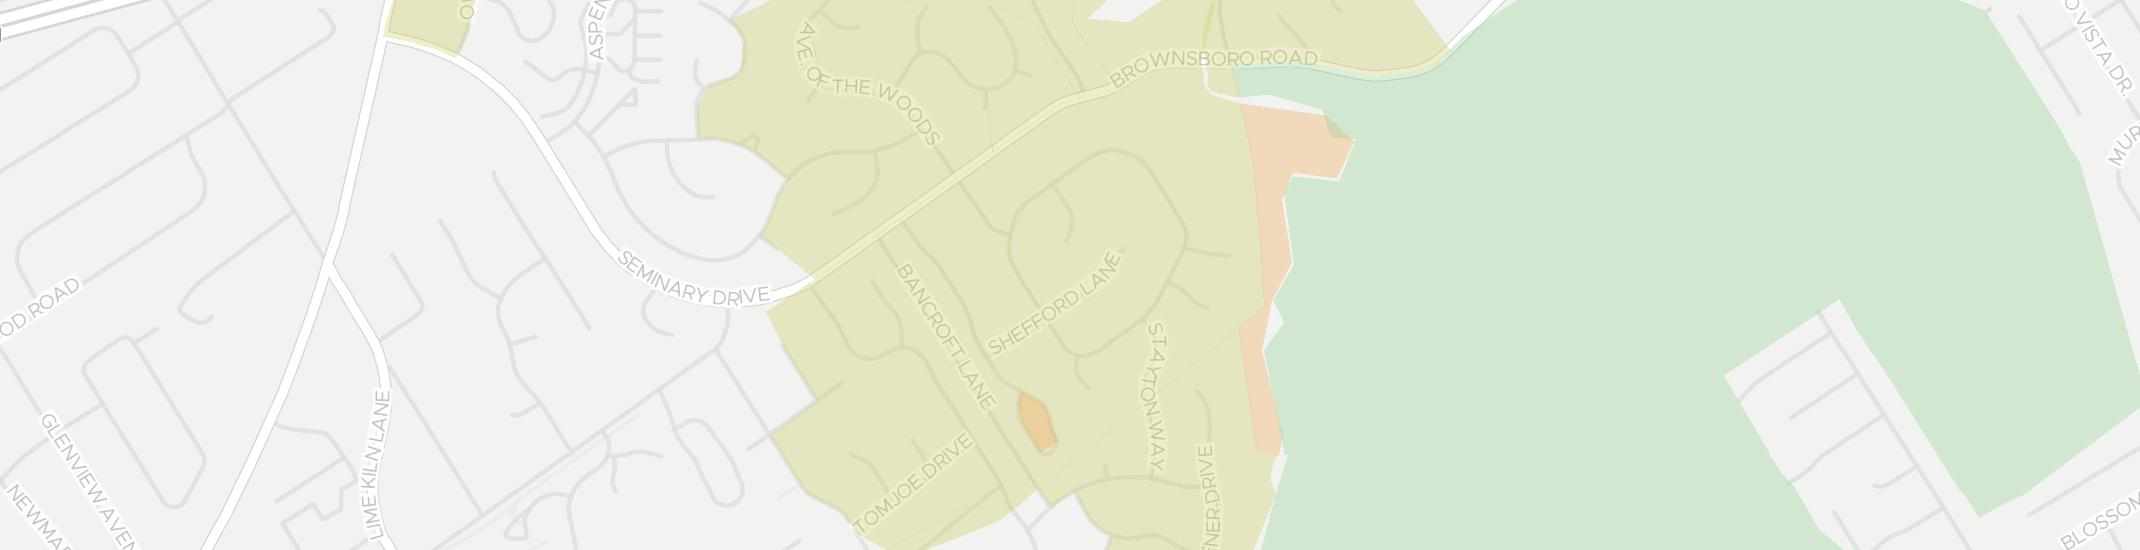 Old Brownsboro Place Internet Competition Map. Click for interactive map.